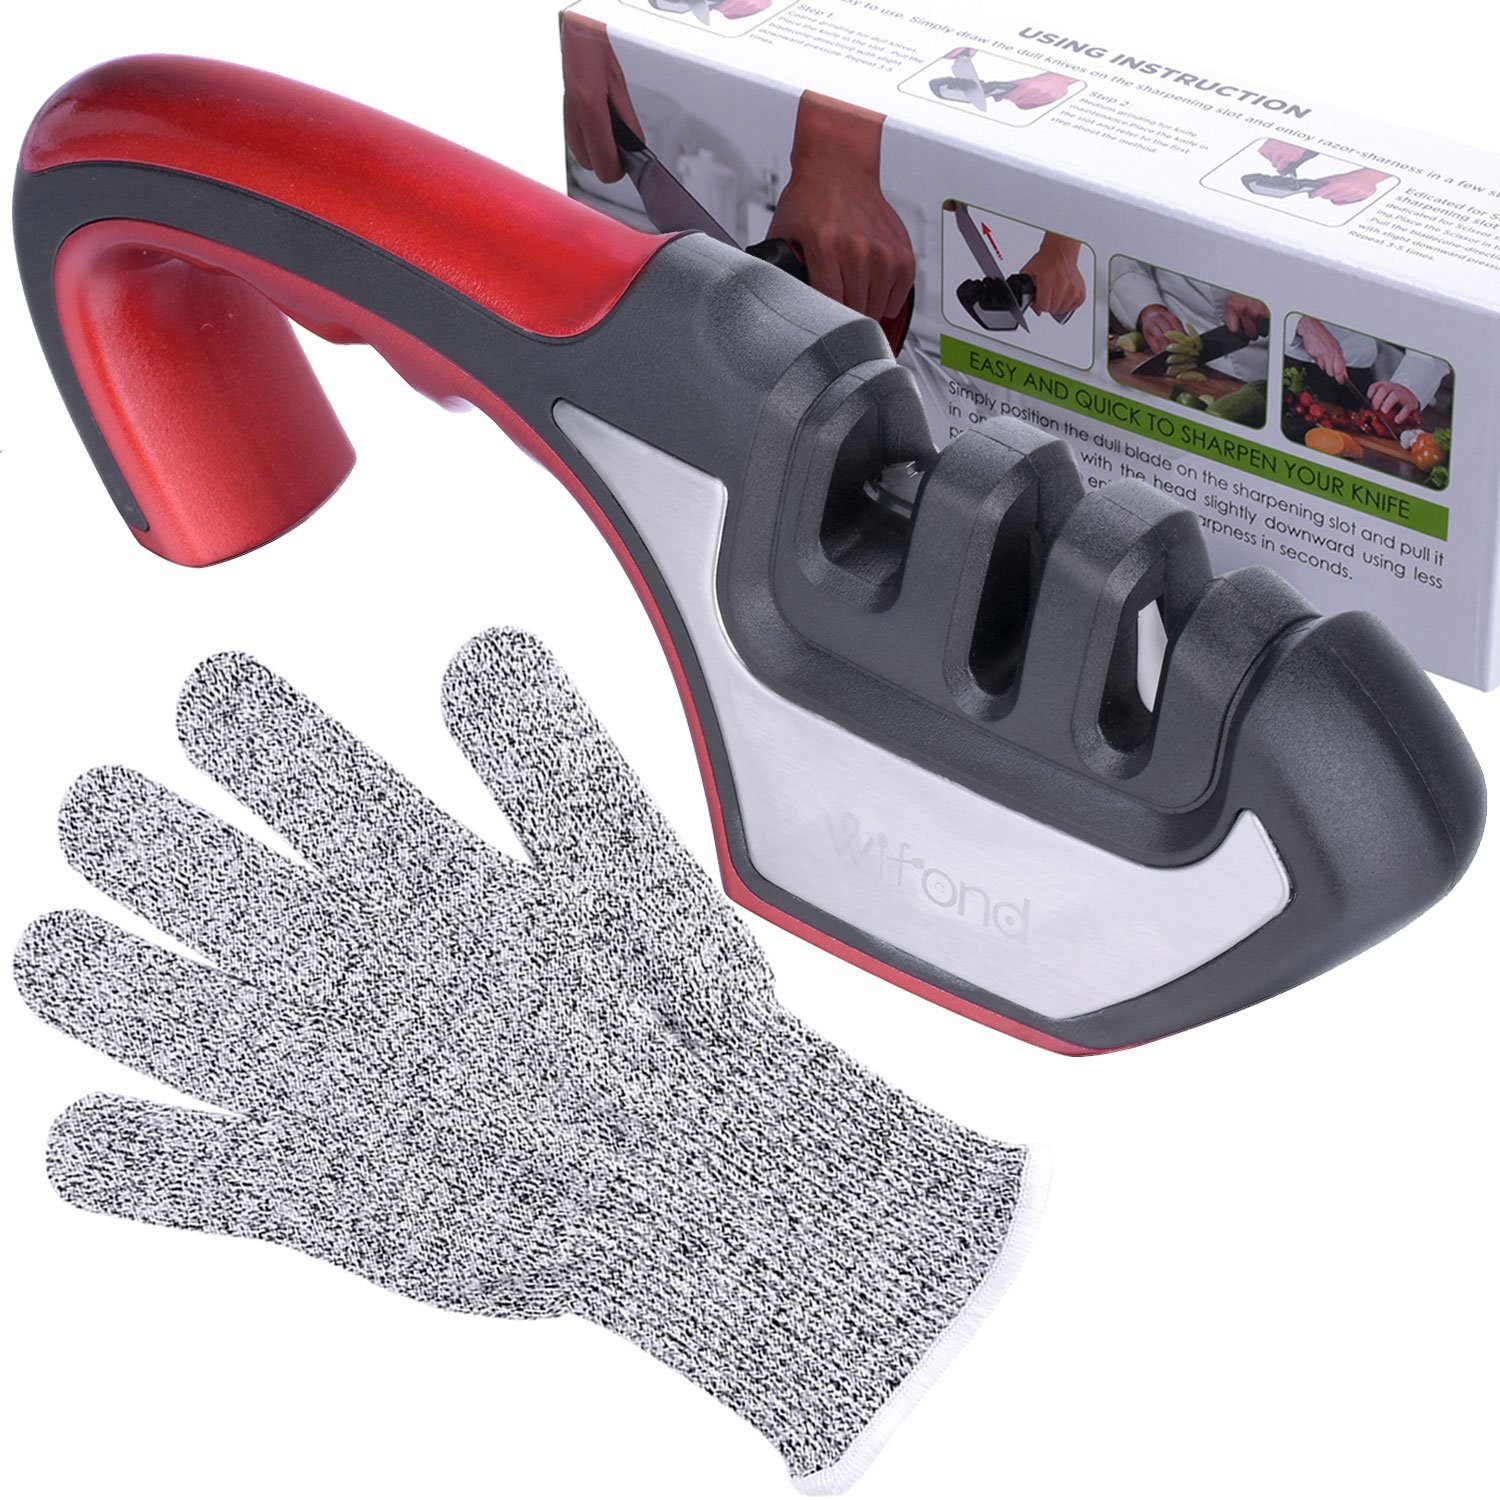 Knife Sharpener - Wifond 3-Stage Home Kitchen Manual Sharpening Kit with Cut-resistant Glove - for Dull Knives Scissors Shears